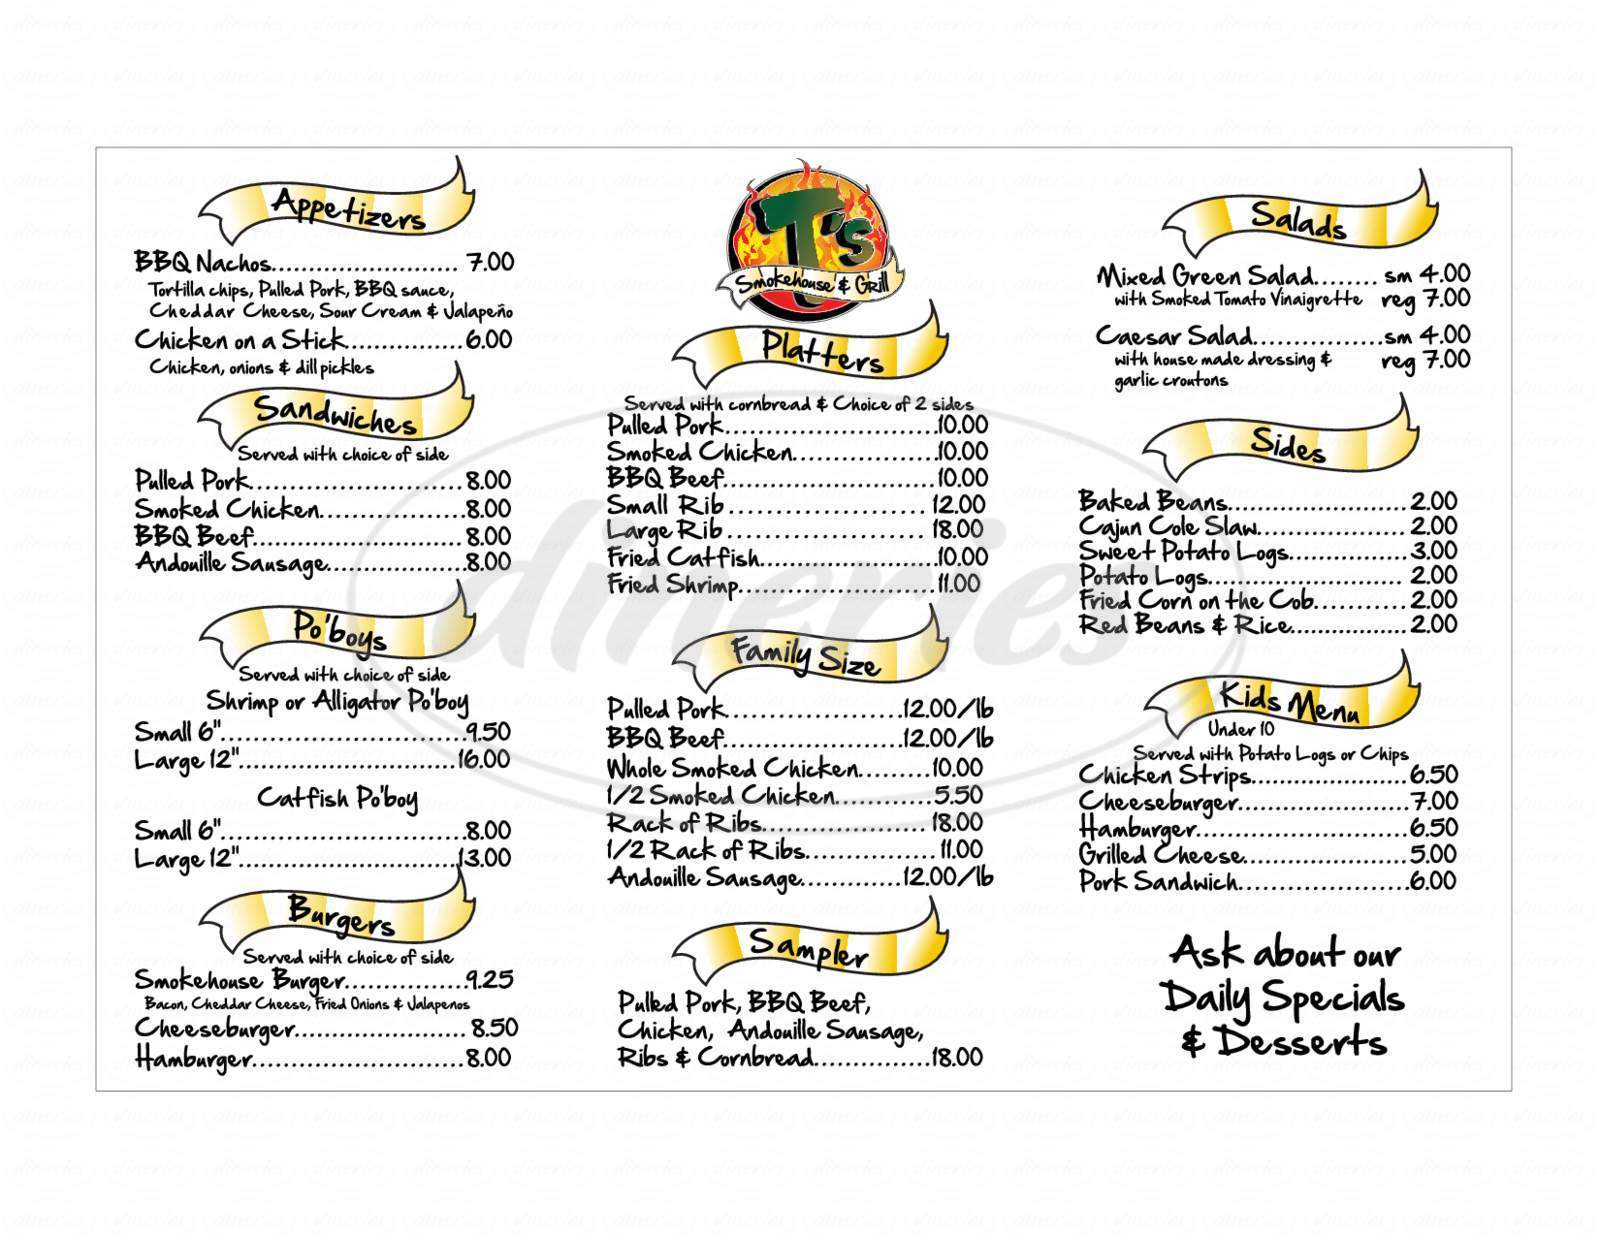 menu for T's Smokehouse & Grill